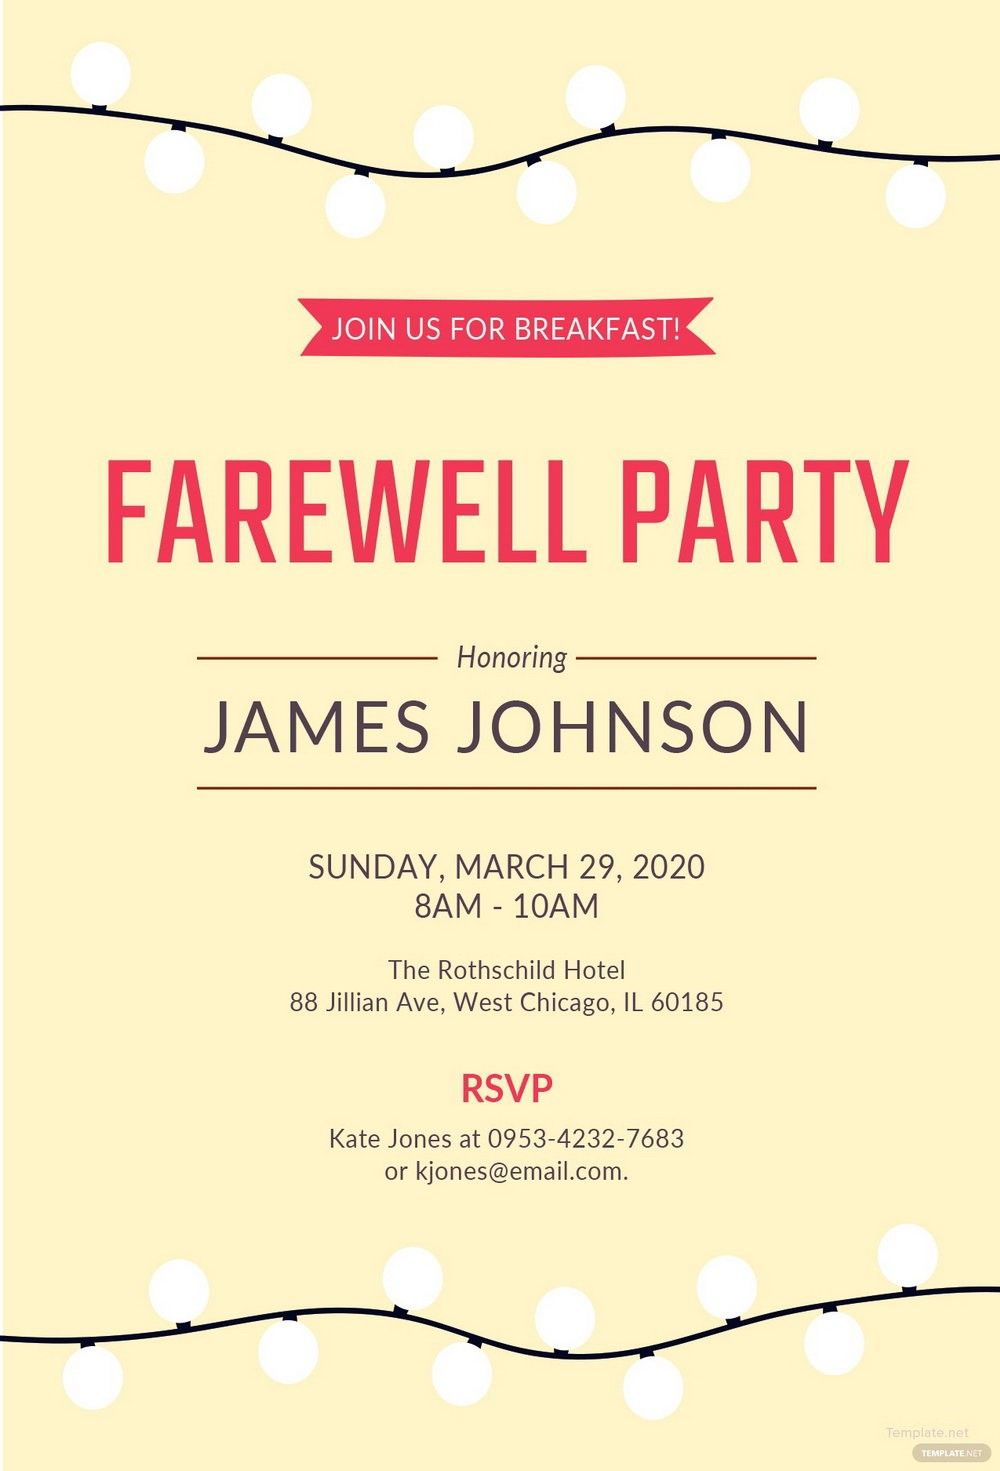 007 Template Ideas Farewell Party Invitation Free Word Throughout Farewell Card Tem Farewell Party Invitations Party Invite Template Dinner Invitation Template